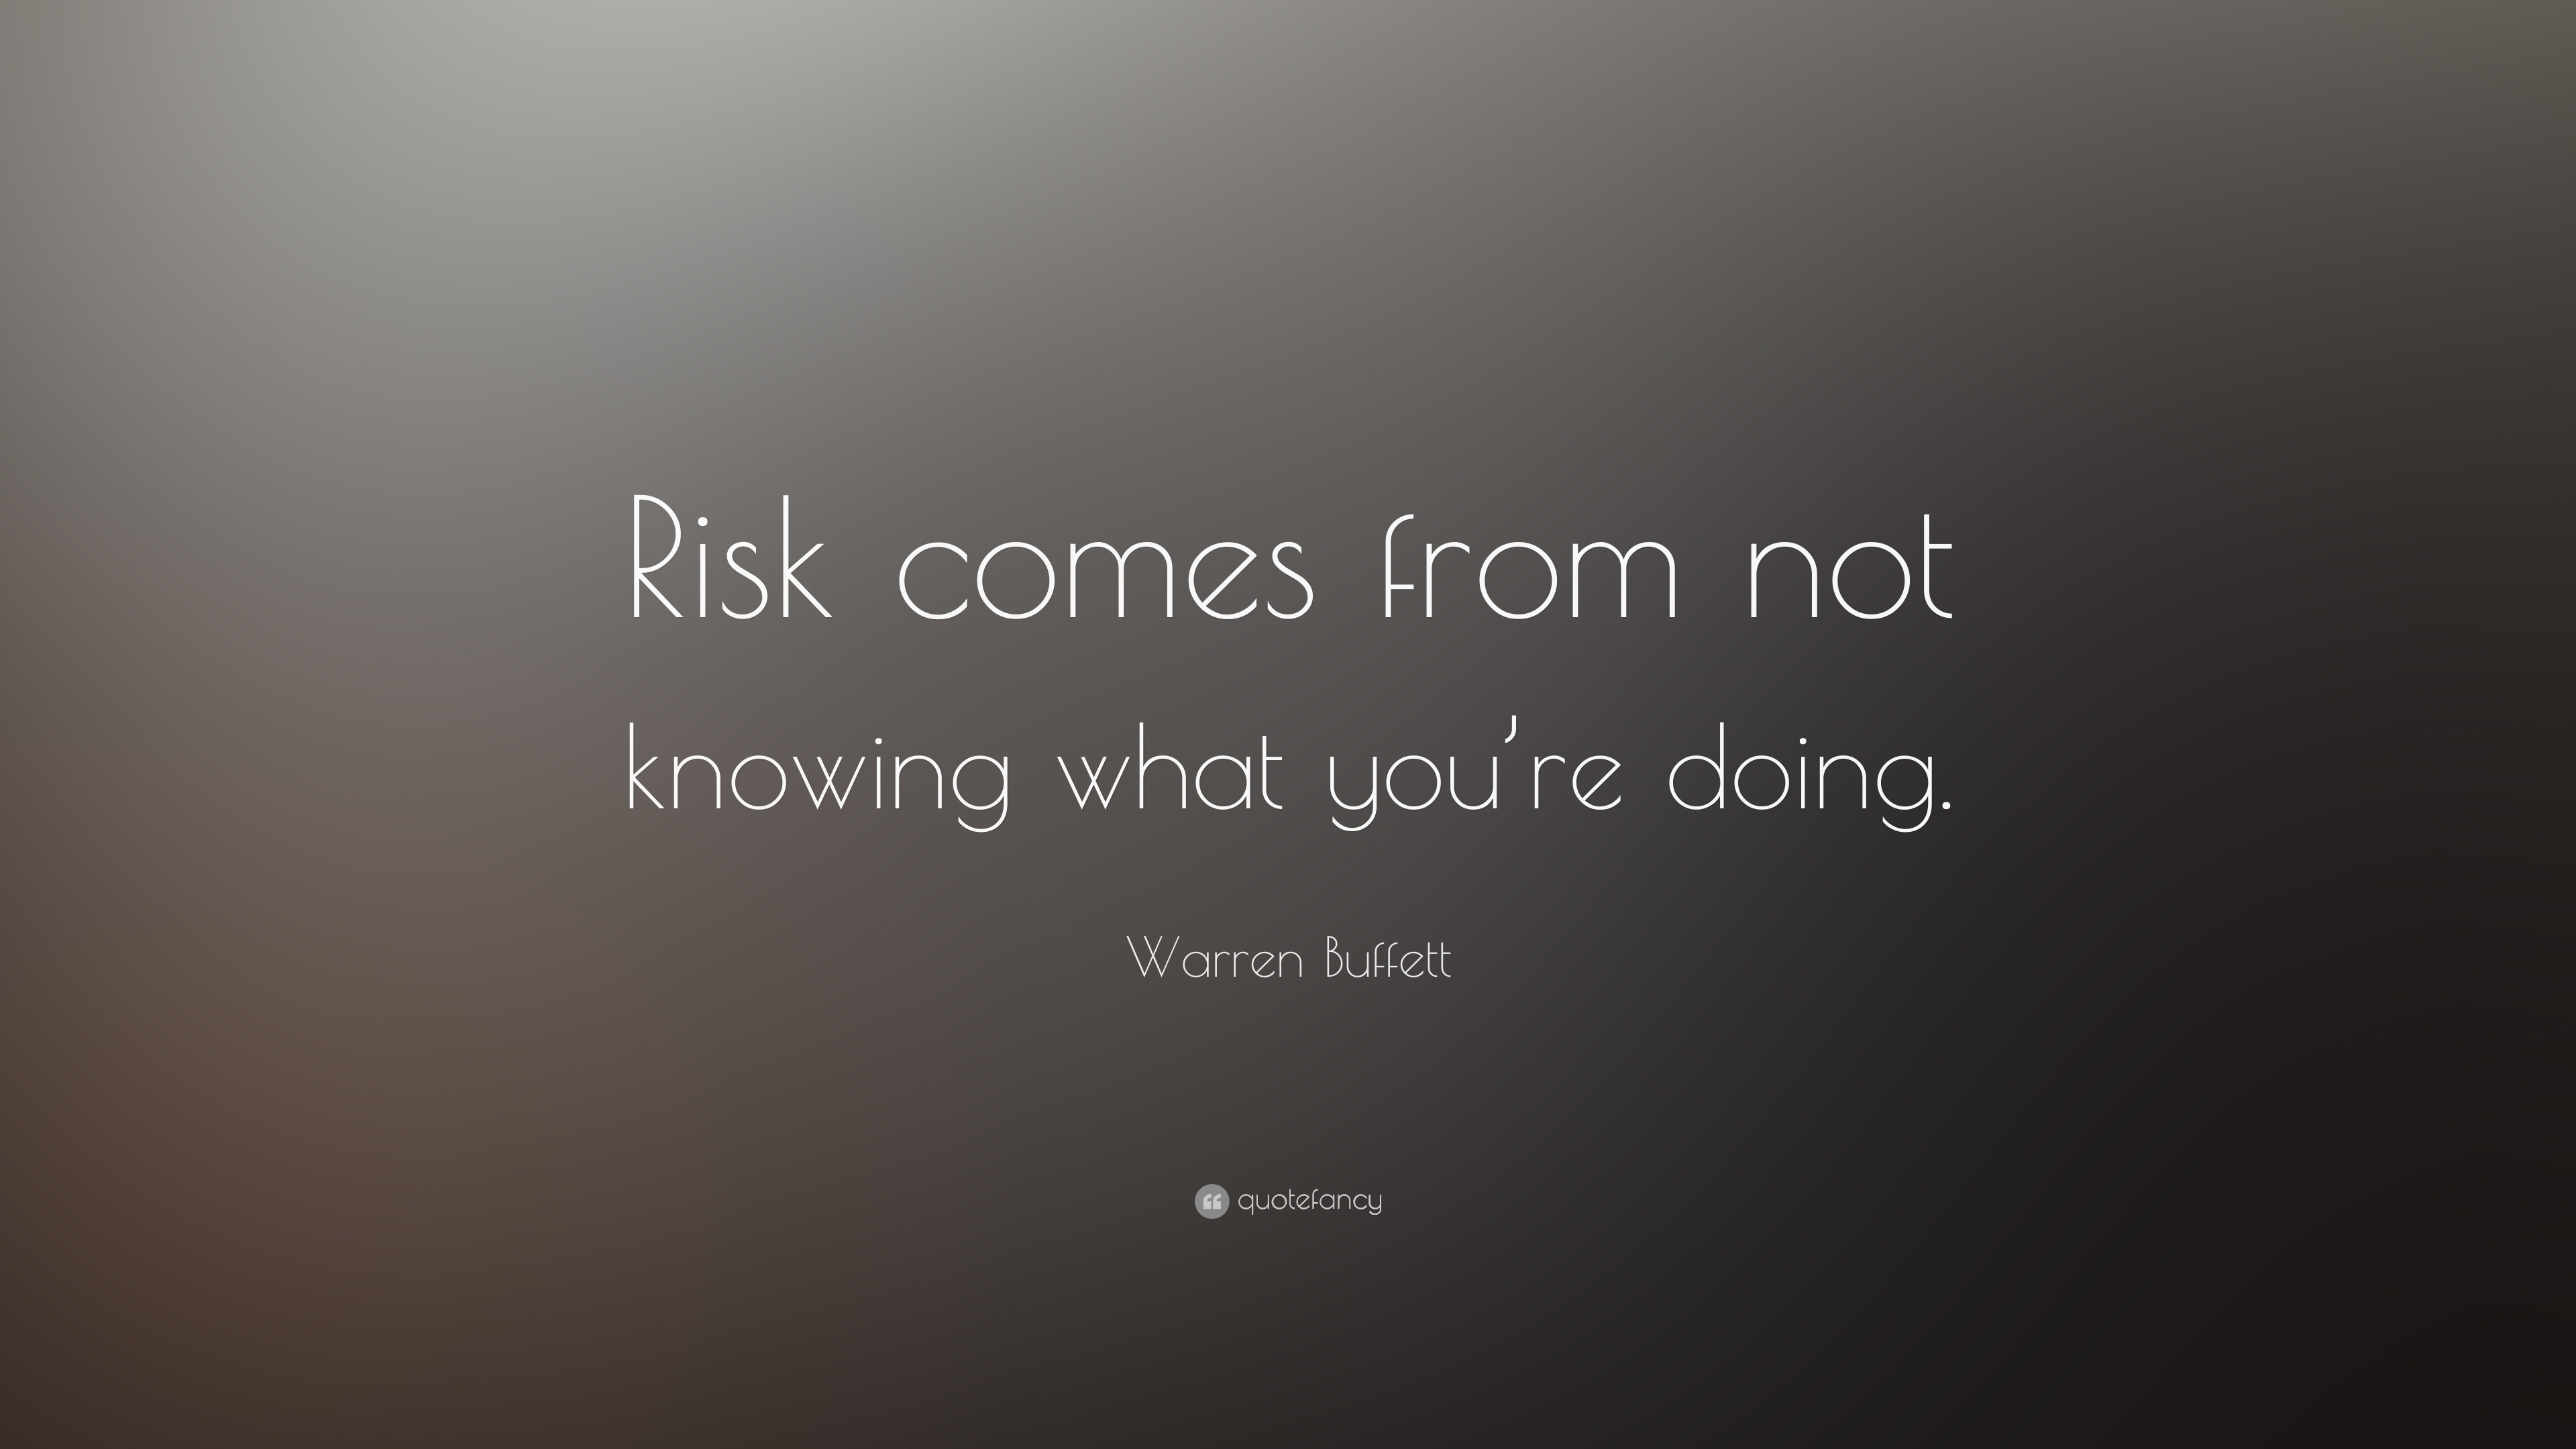 Dream Quotes Wallpaper 1080p Warren Buffett Quote Risk Comes From Not Knowing What